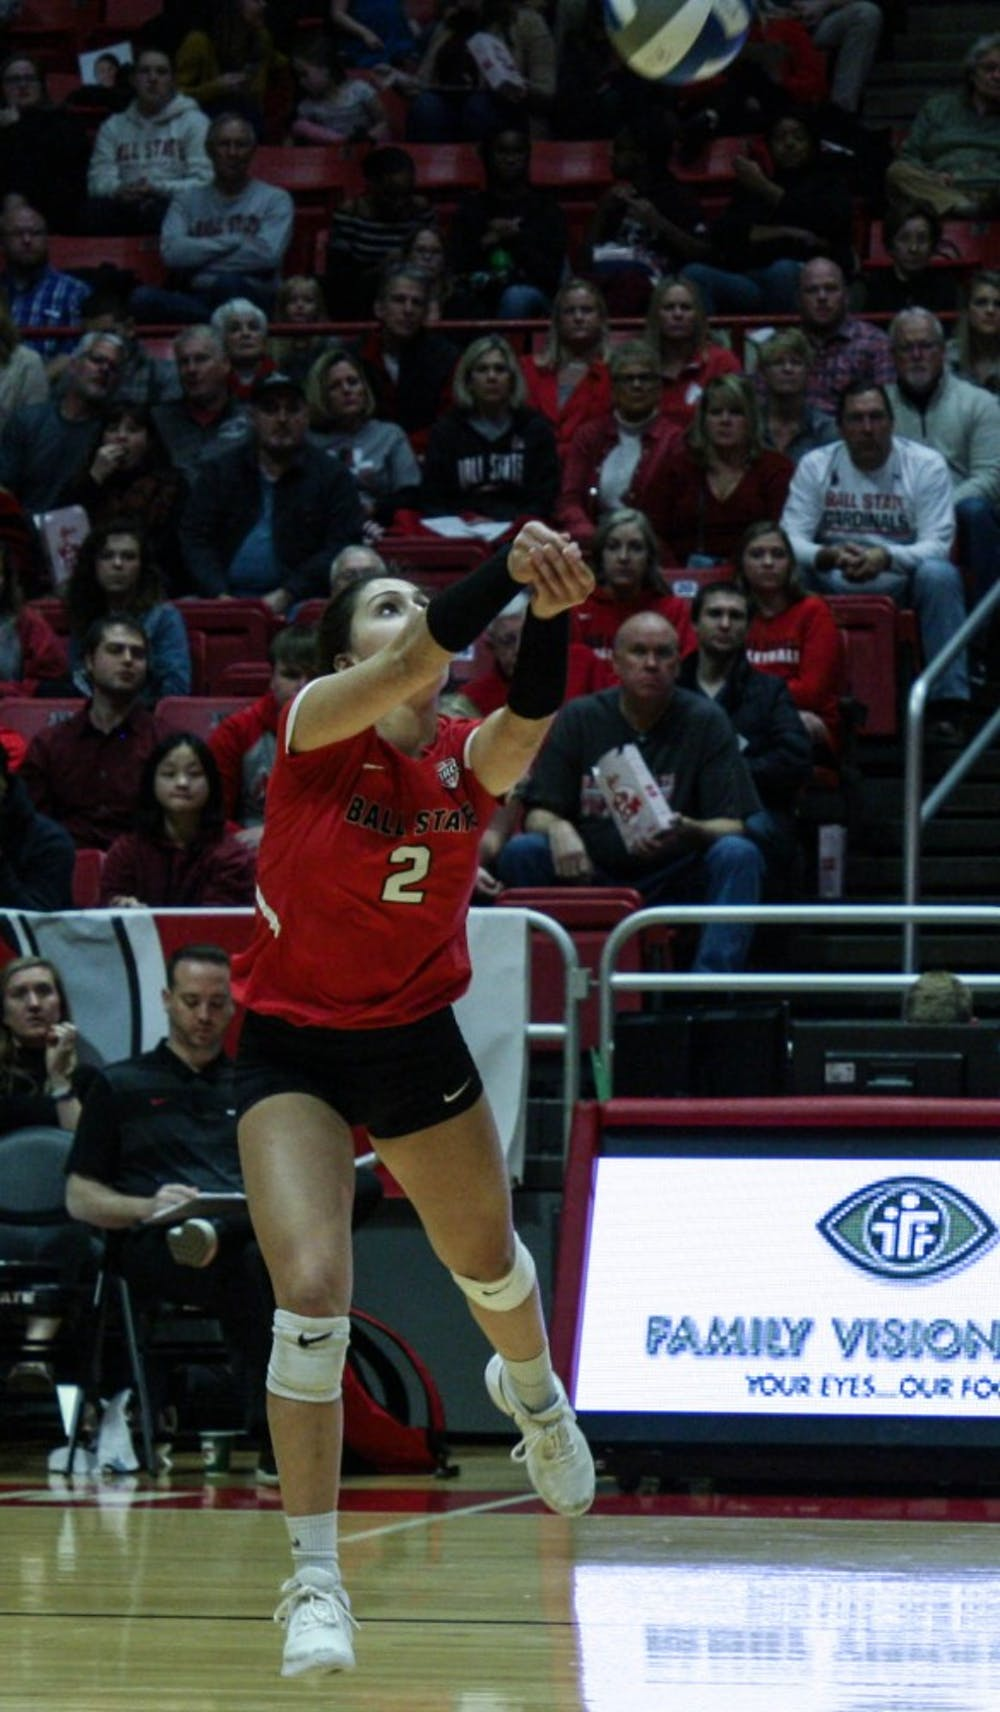 <p>Junior defensive specialist Kate Avila bumps the ball as it comes over the net at the Ball State women's volleyball match versus Akron University Nov.10, 2018 at John E. Worthen Arena. Avila had two assists at the end of the game. <strong>Tailiyah Johnson,DN</strong></p>